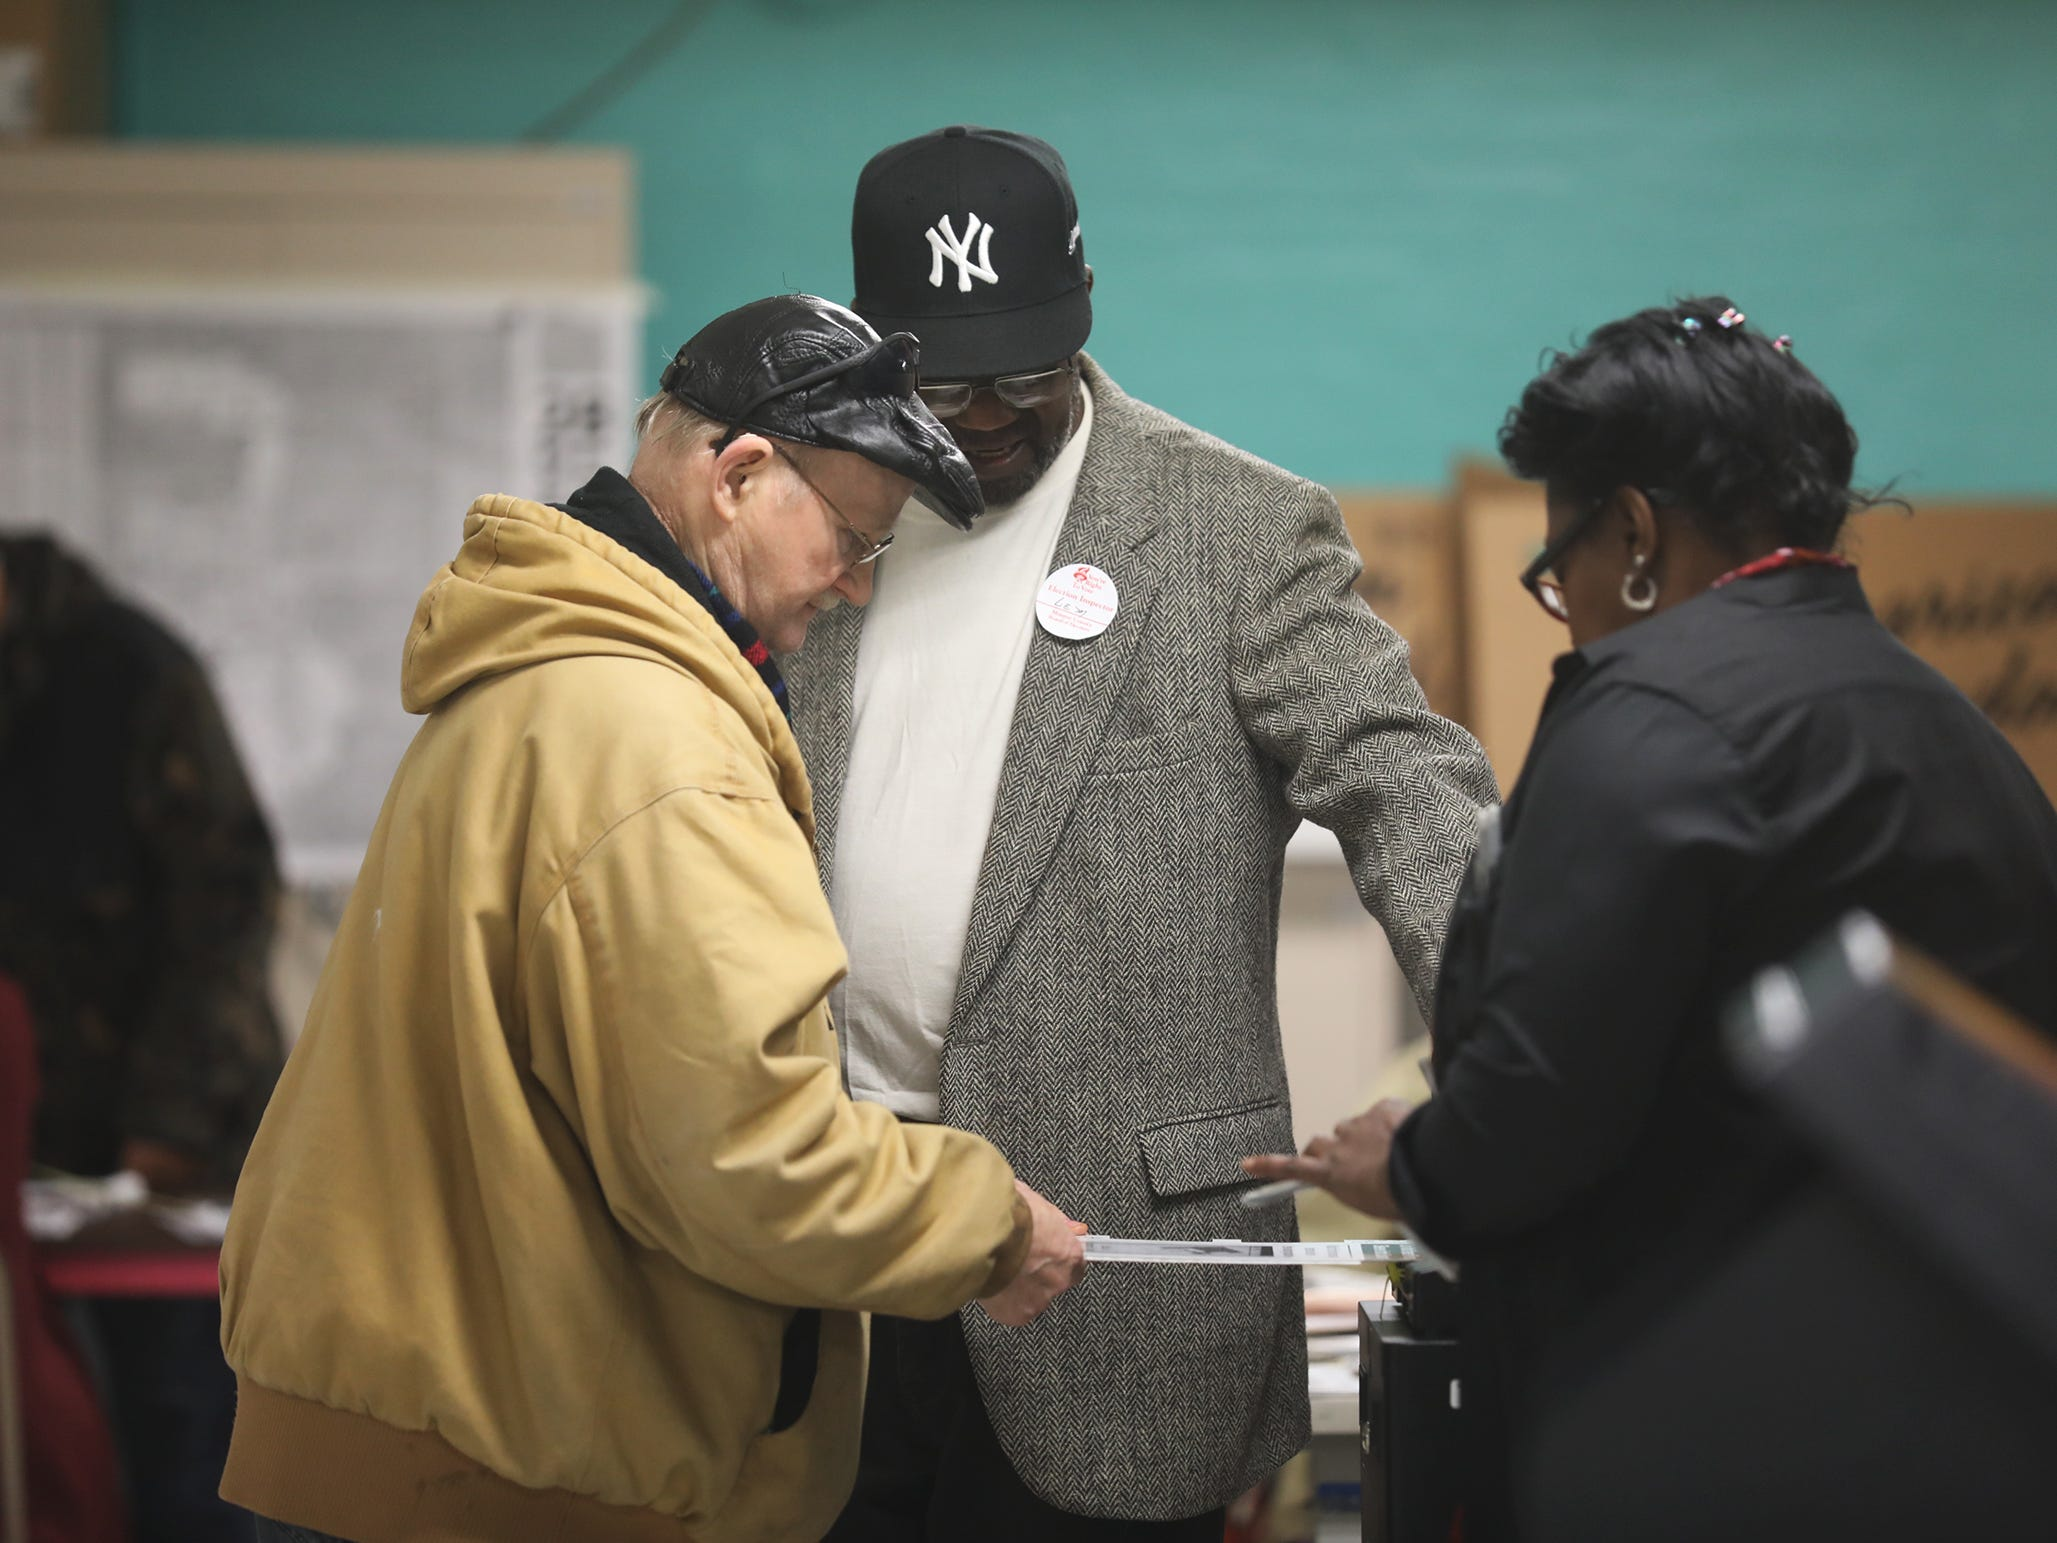 Francis Castle gets help casting his ballot from election inspectors Lem Dawkins and Marilynn Williams at Edgerton Center.